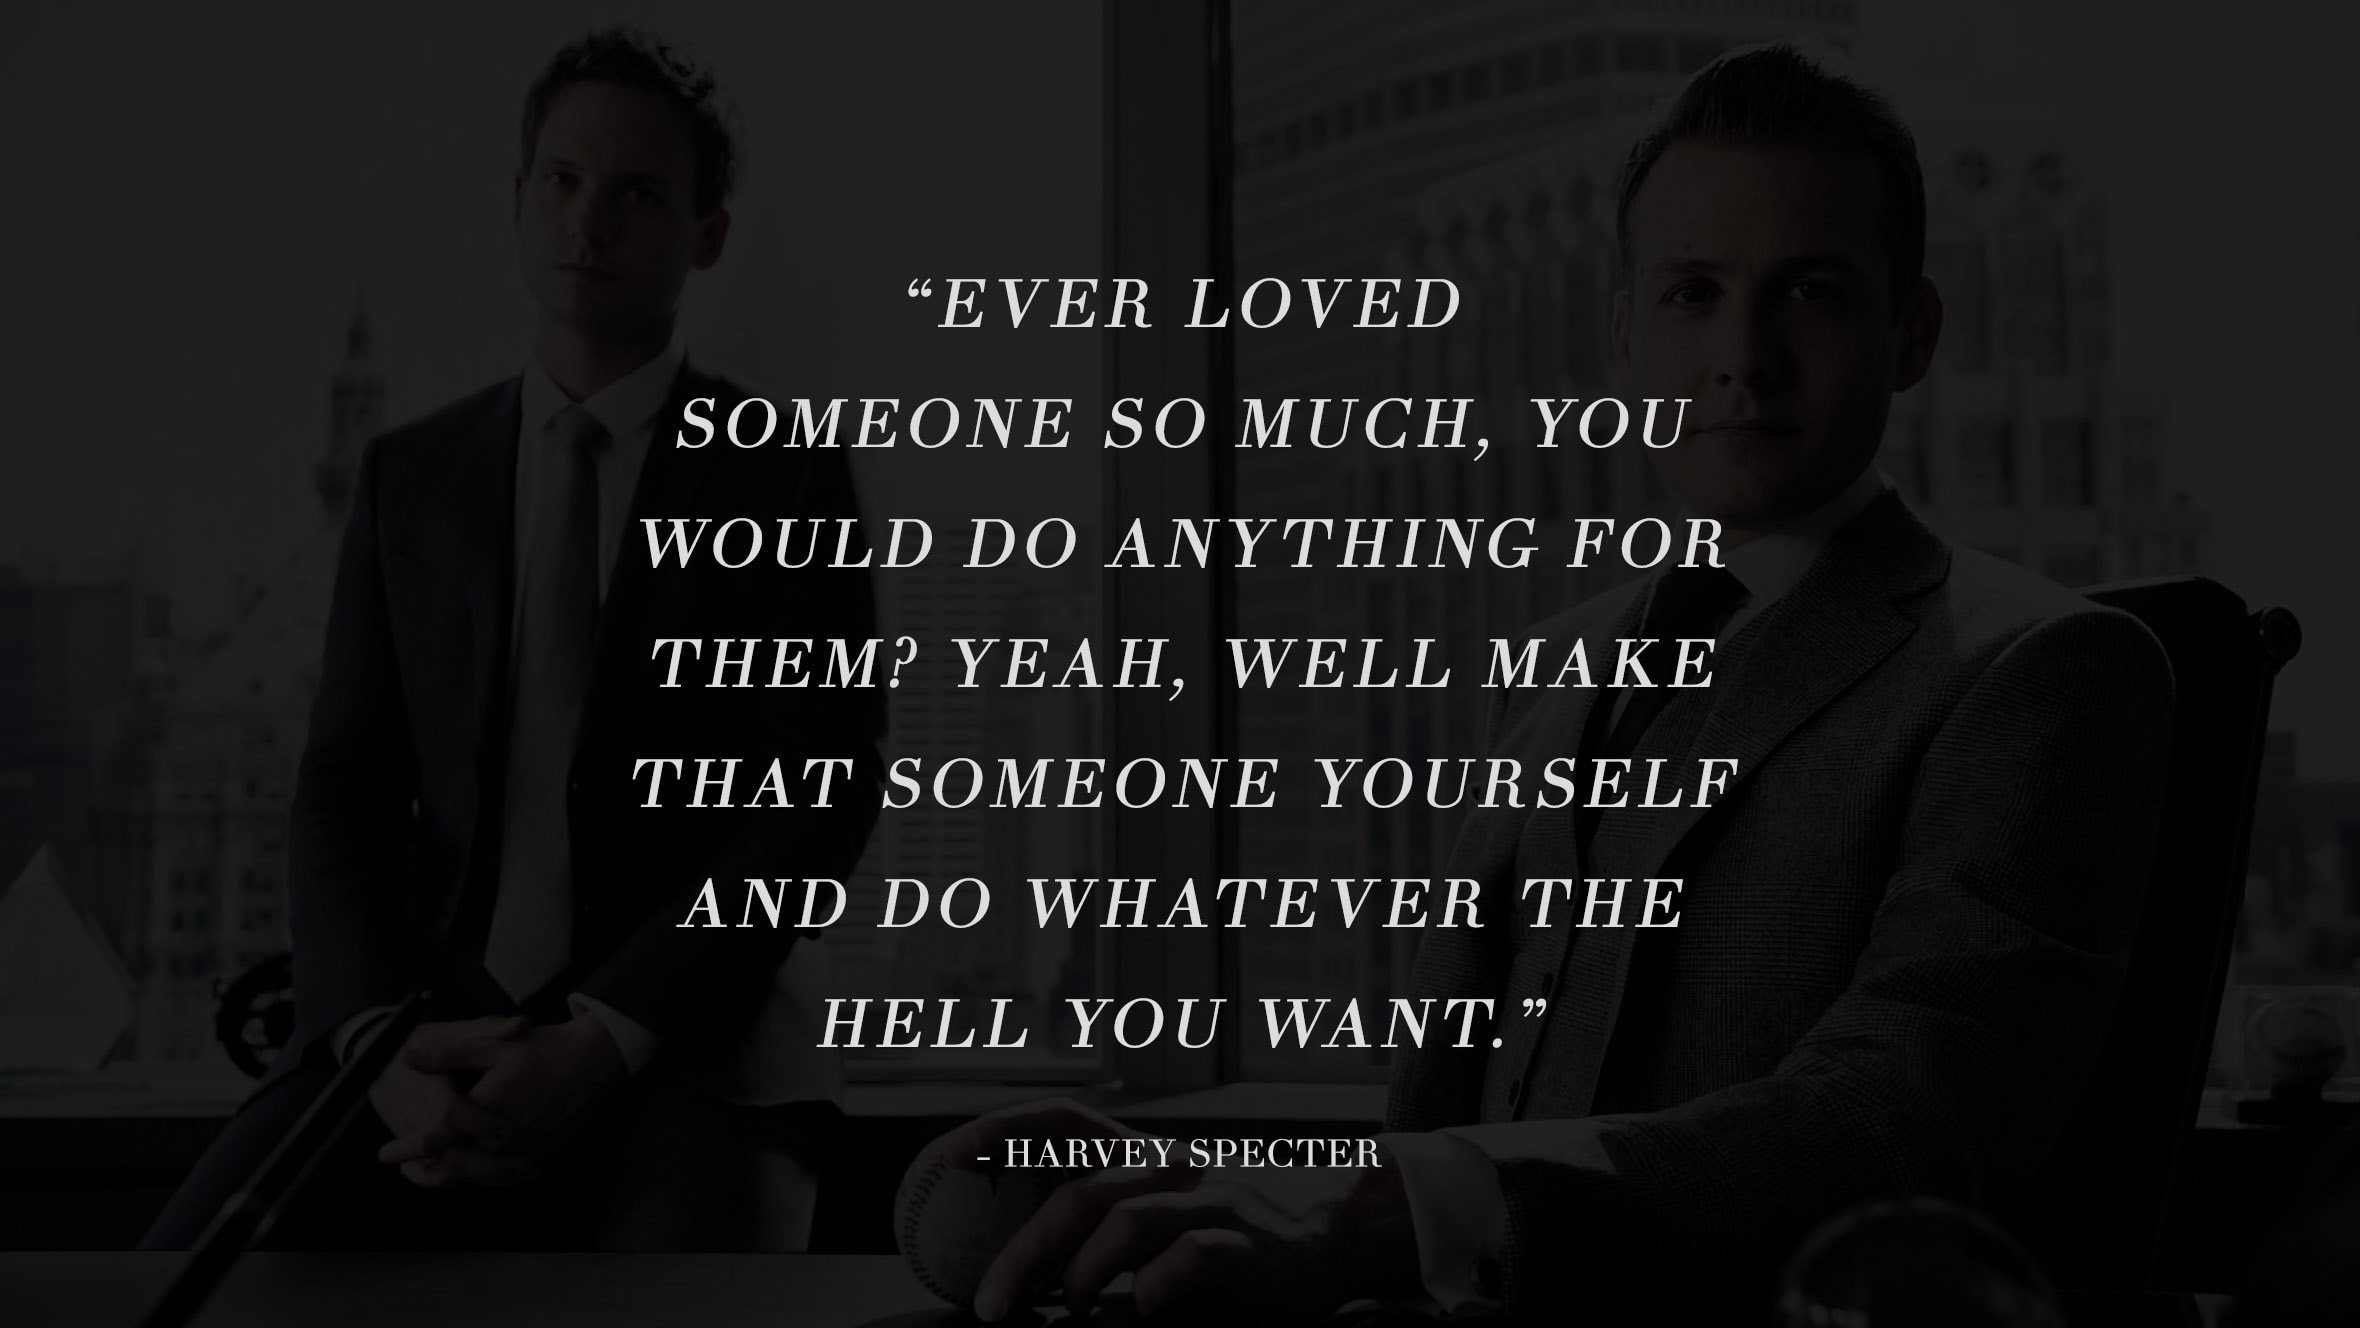 13 Highly Inspiring And Motivating Quotes From The Successful TV Series Suits 13